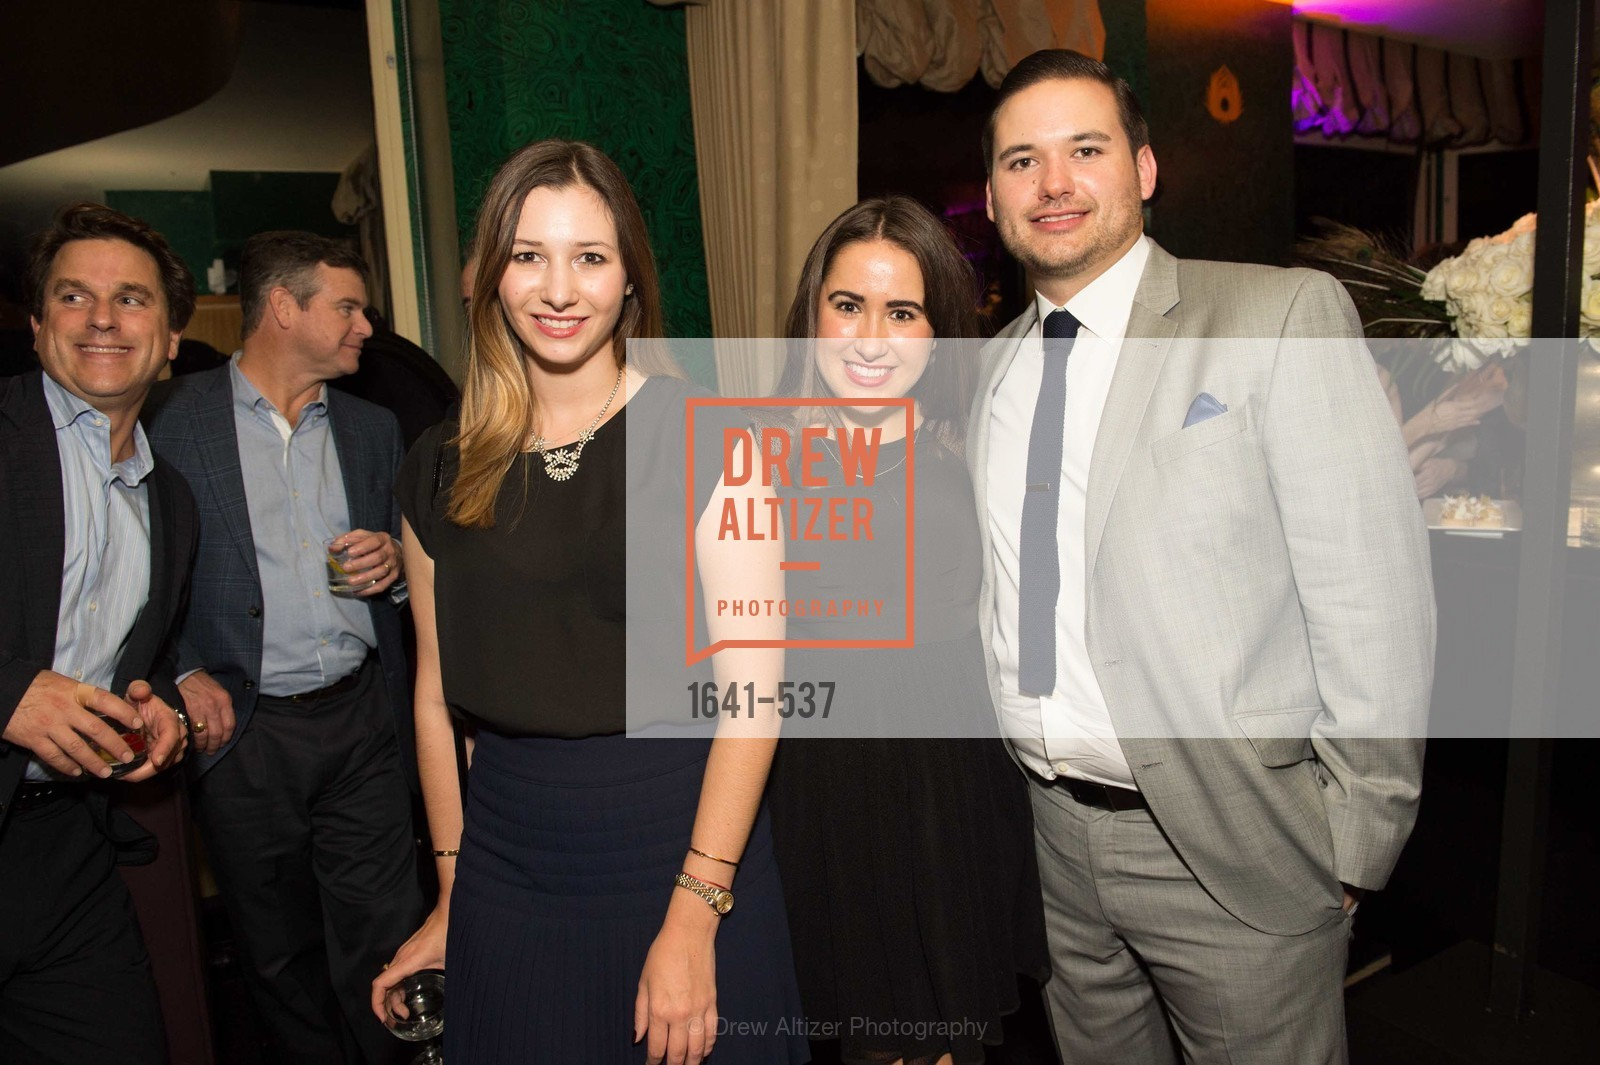 Morgan, TOP OF THE MARK'S 75TH Anniversary Party, US, November 7th, 2014,Drew Altizer, Drew Altizer Photography, full-service agency, private events, San Francisco photographer, photographer california